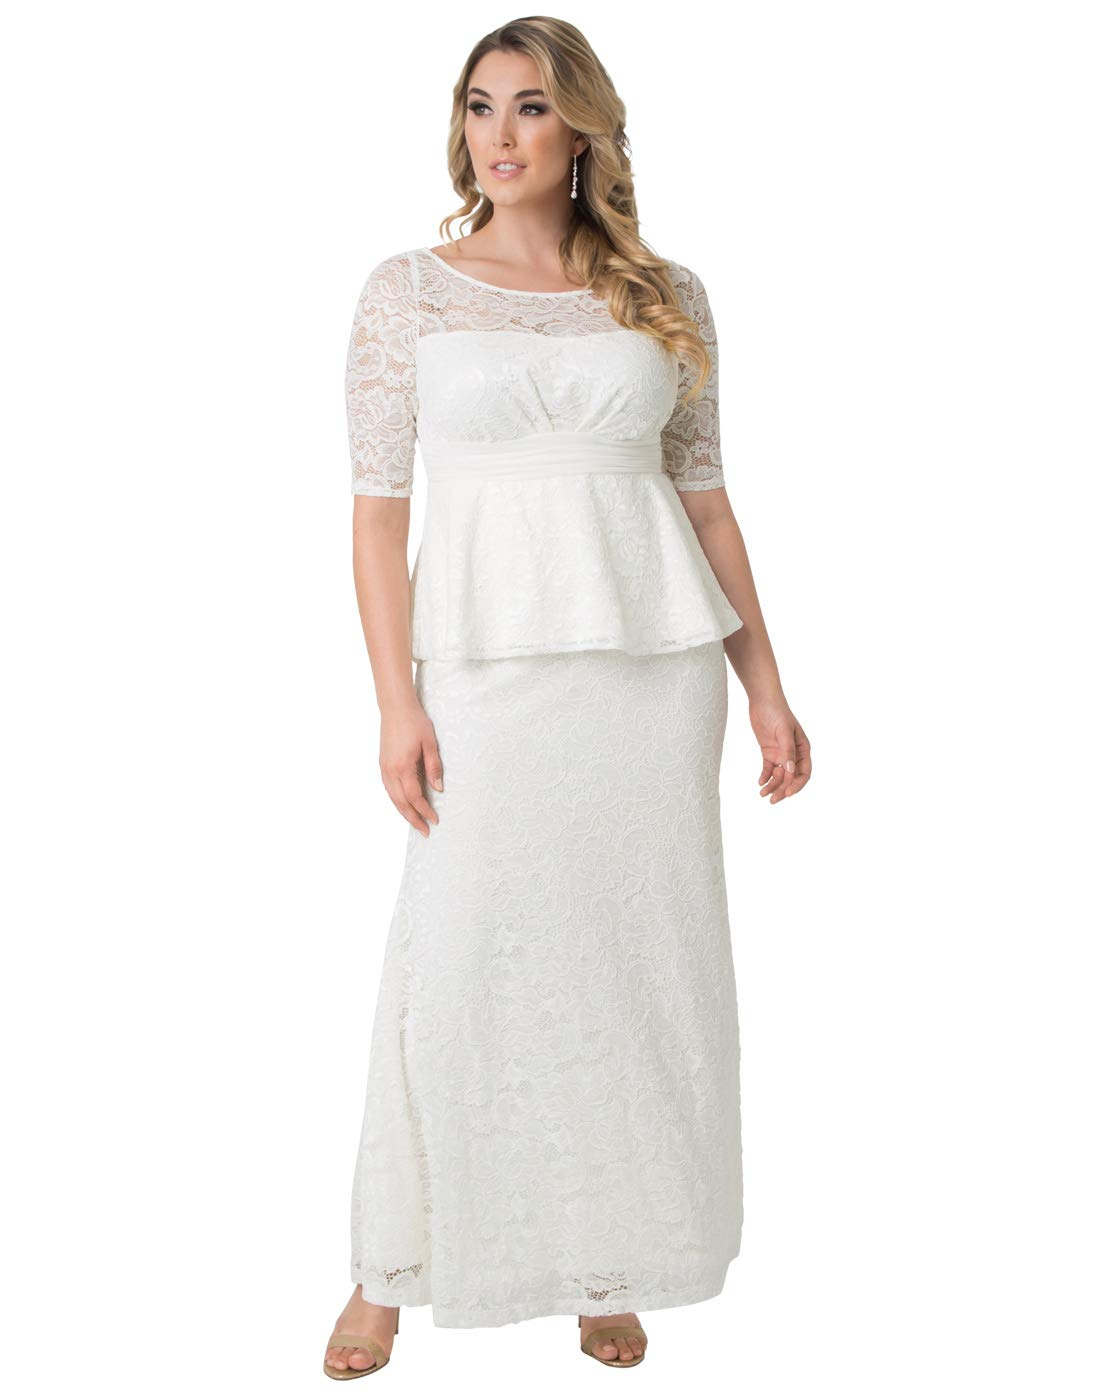 3f54306f34 Kiyonna Wedding Dresses - Any USA Size for bride or mother or guest